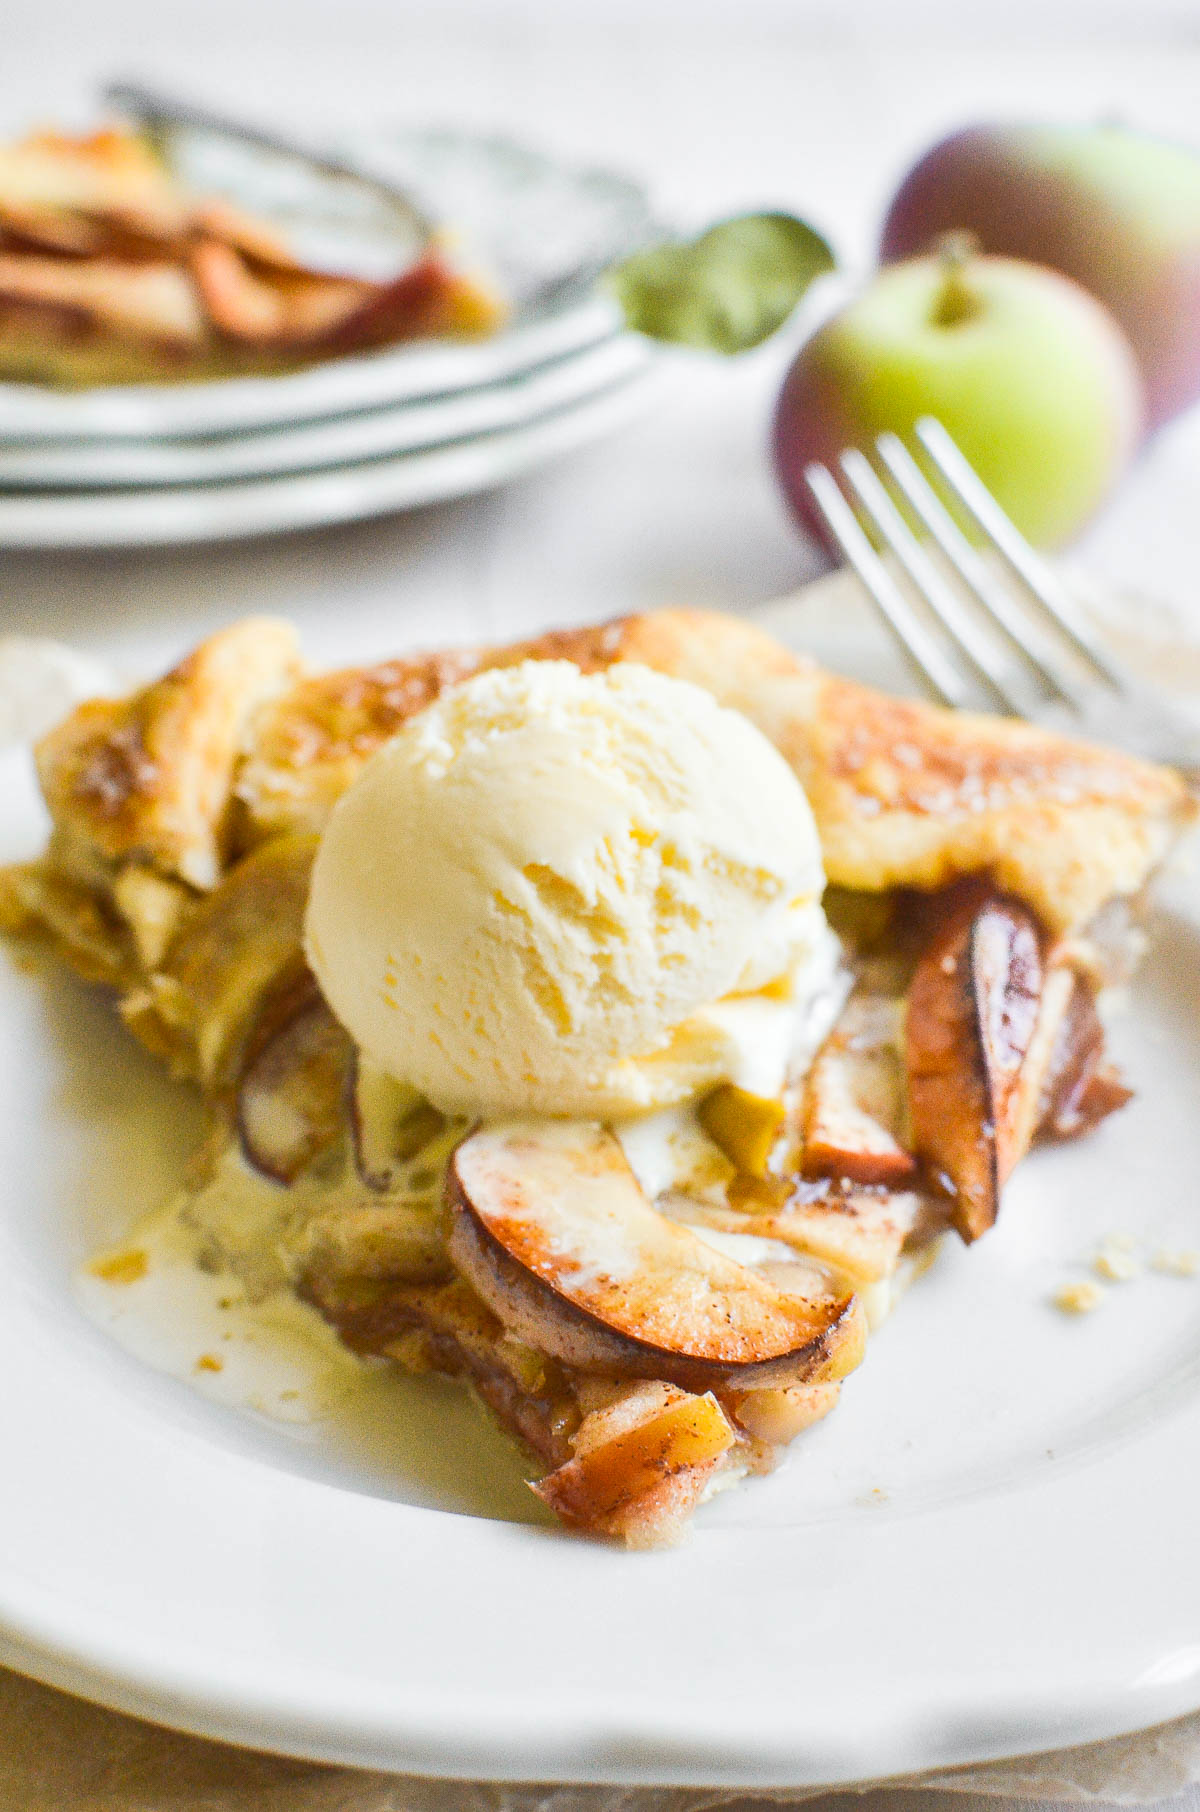 A slice of apple galette topped with a scoop of vanilla ice cream.